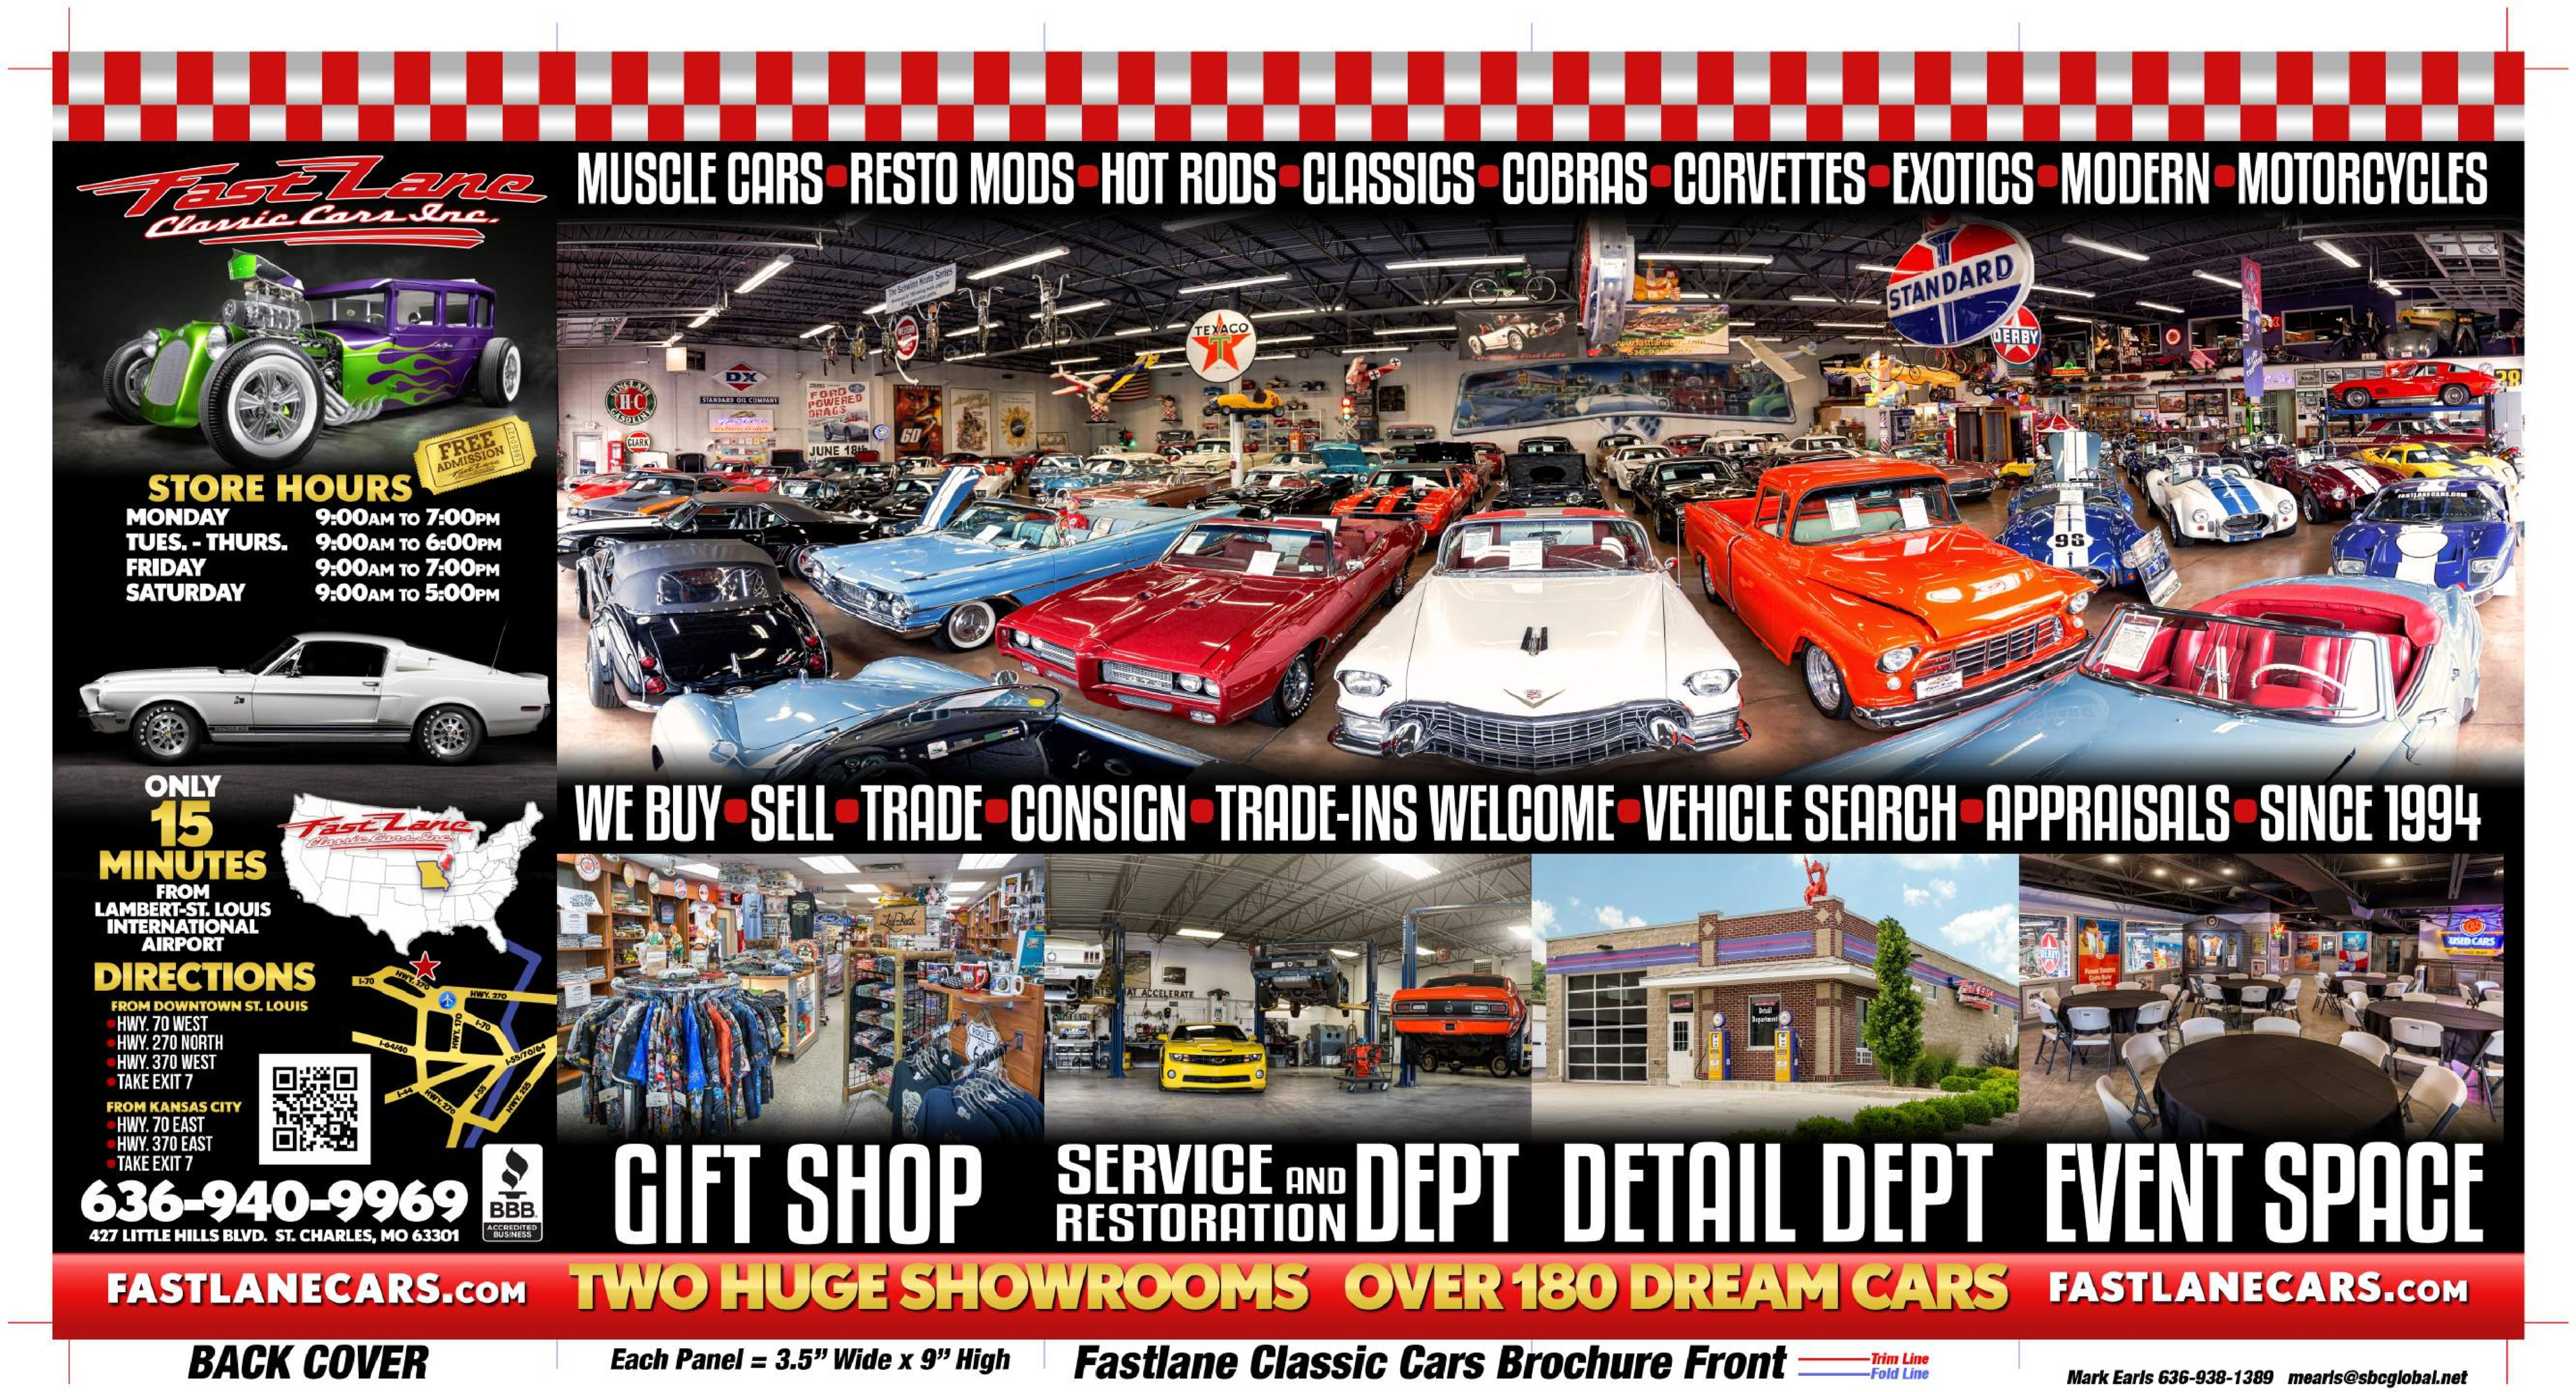 Fast Lane Classic Cars | St. Charles, MO - visitorfun.com